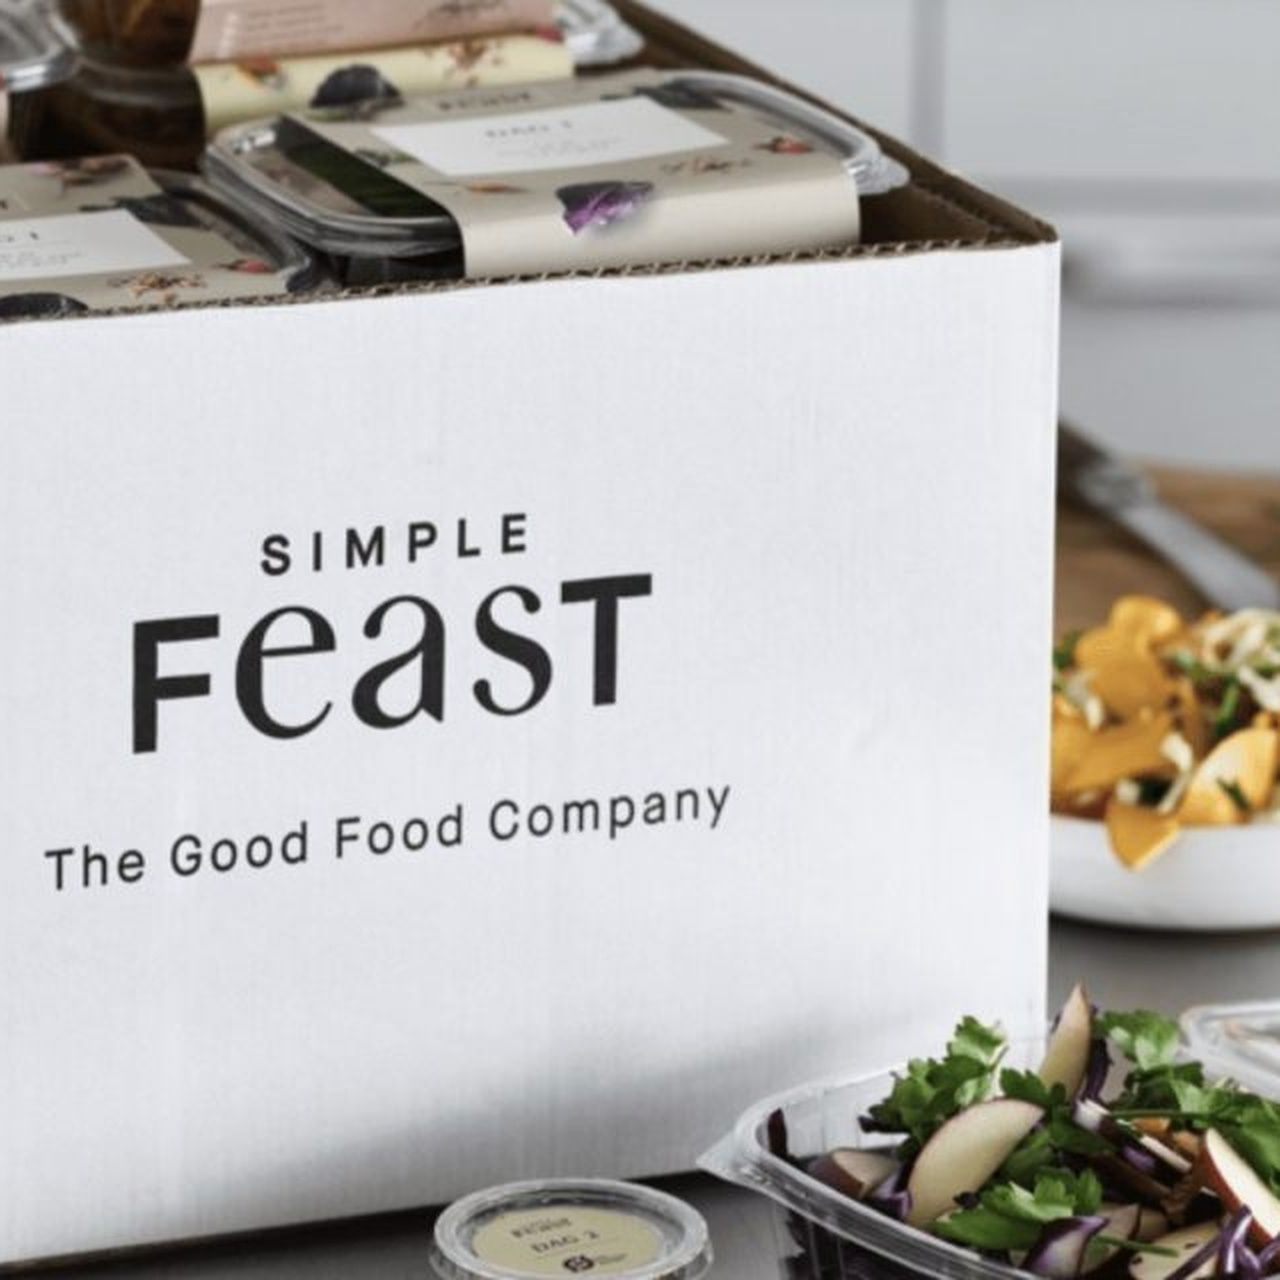 Danish Vegan Meal Delivery Service Set For Major Expansion With 12 Million Investment Vegan Meal Delivery Healthy Food Delivery Company Meals